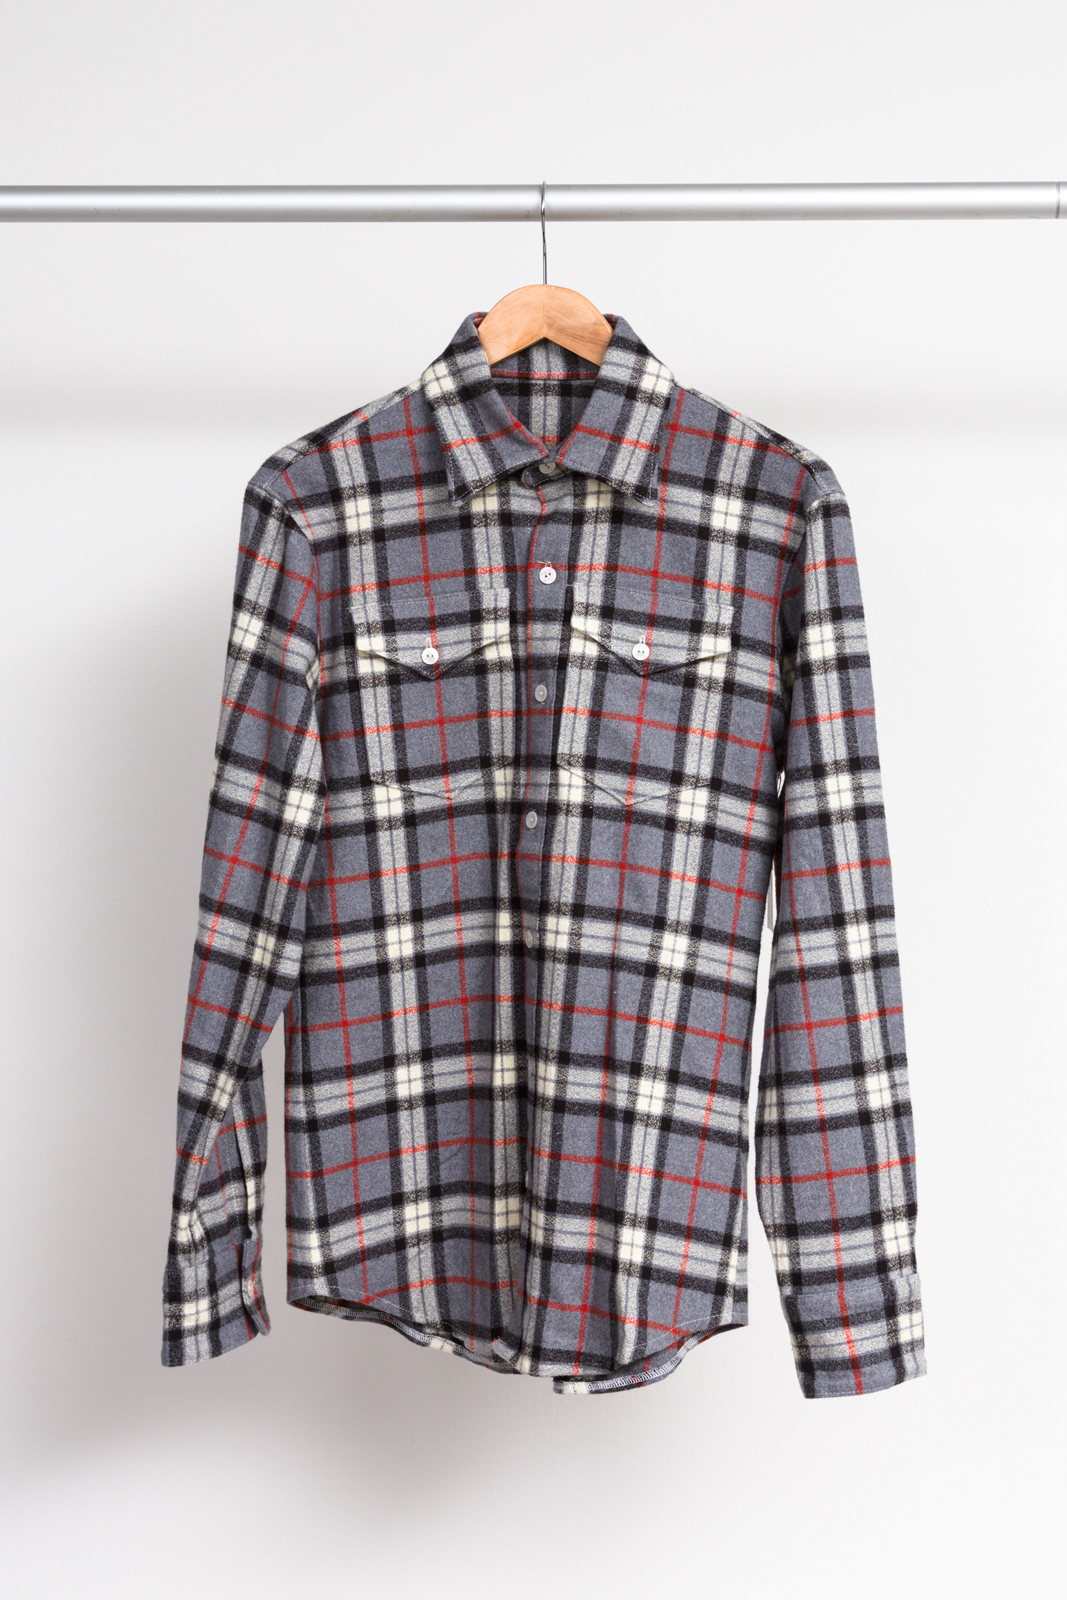 M6044  BY  MCCALL'S,   MAMMOTH FLANNEL